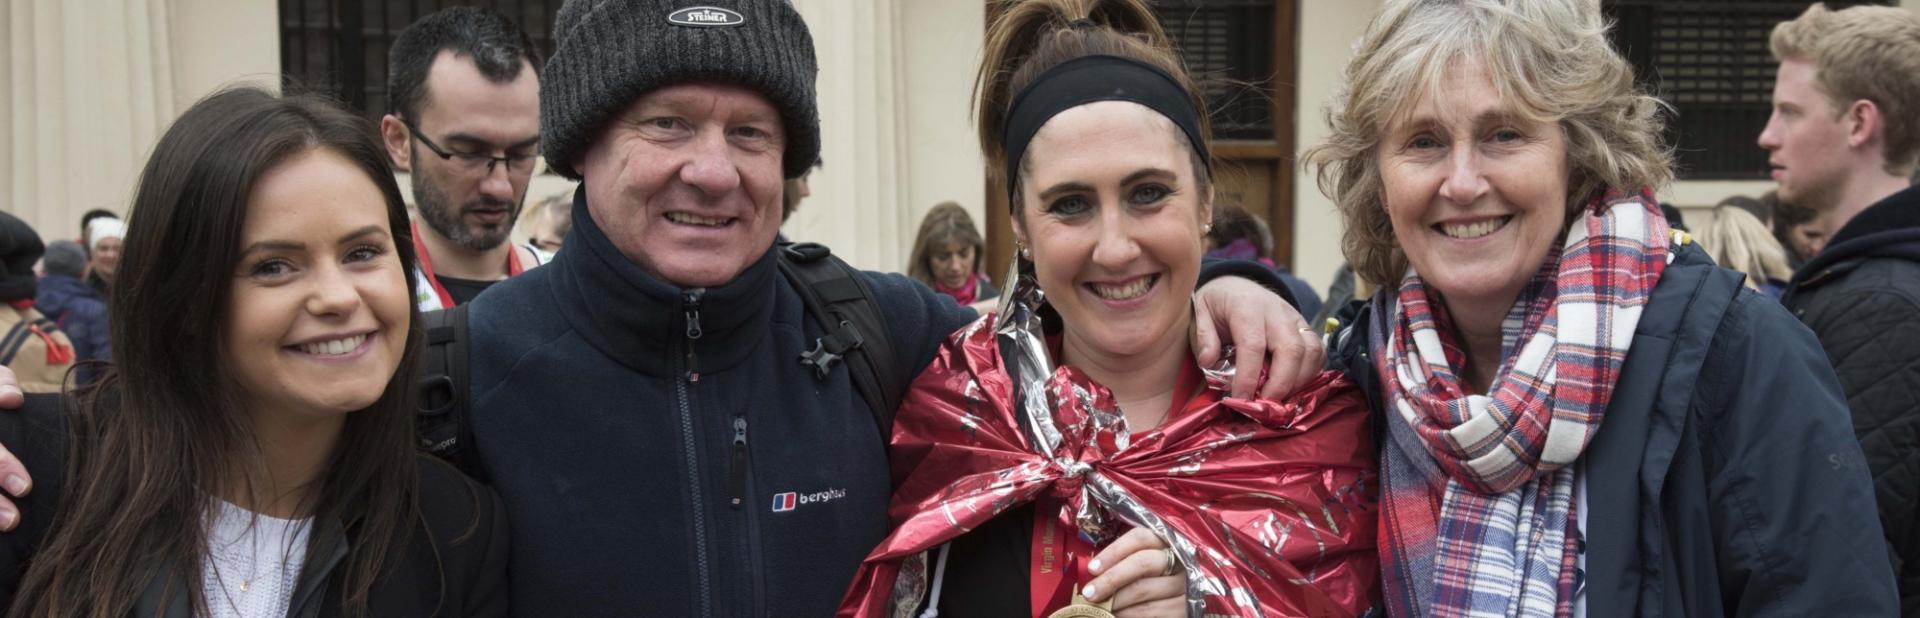 A London Marathon participant is comforted by her family and friends